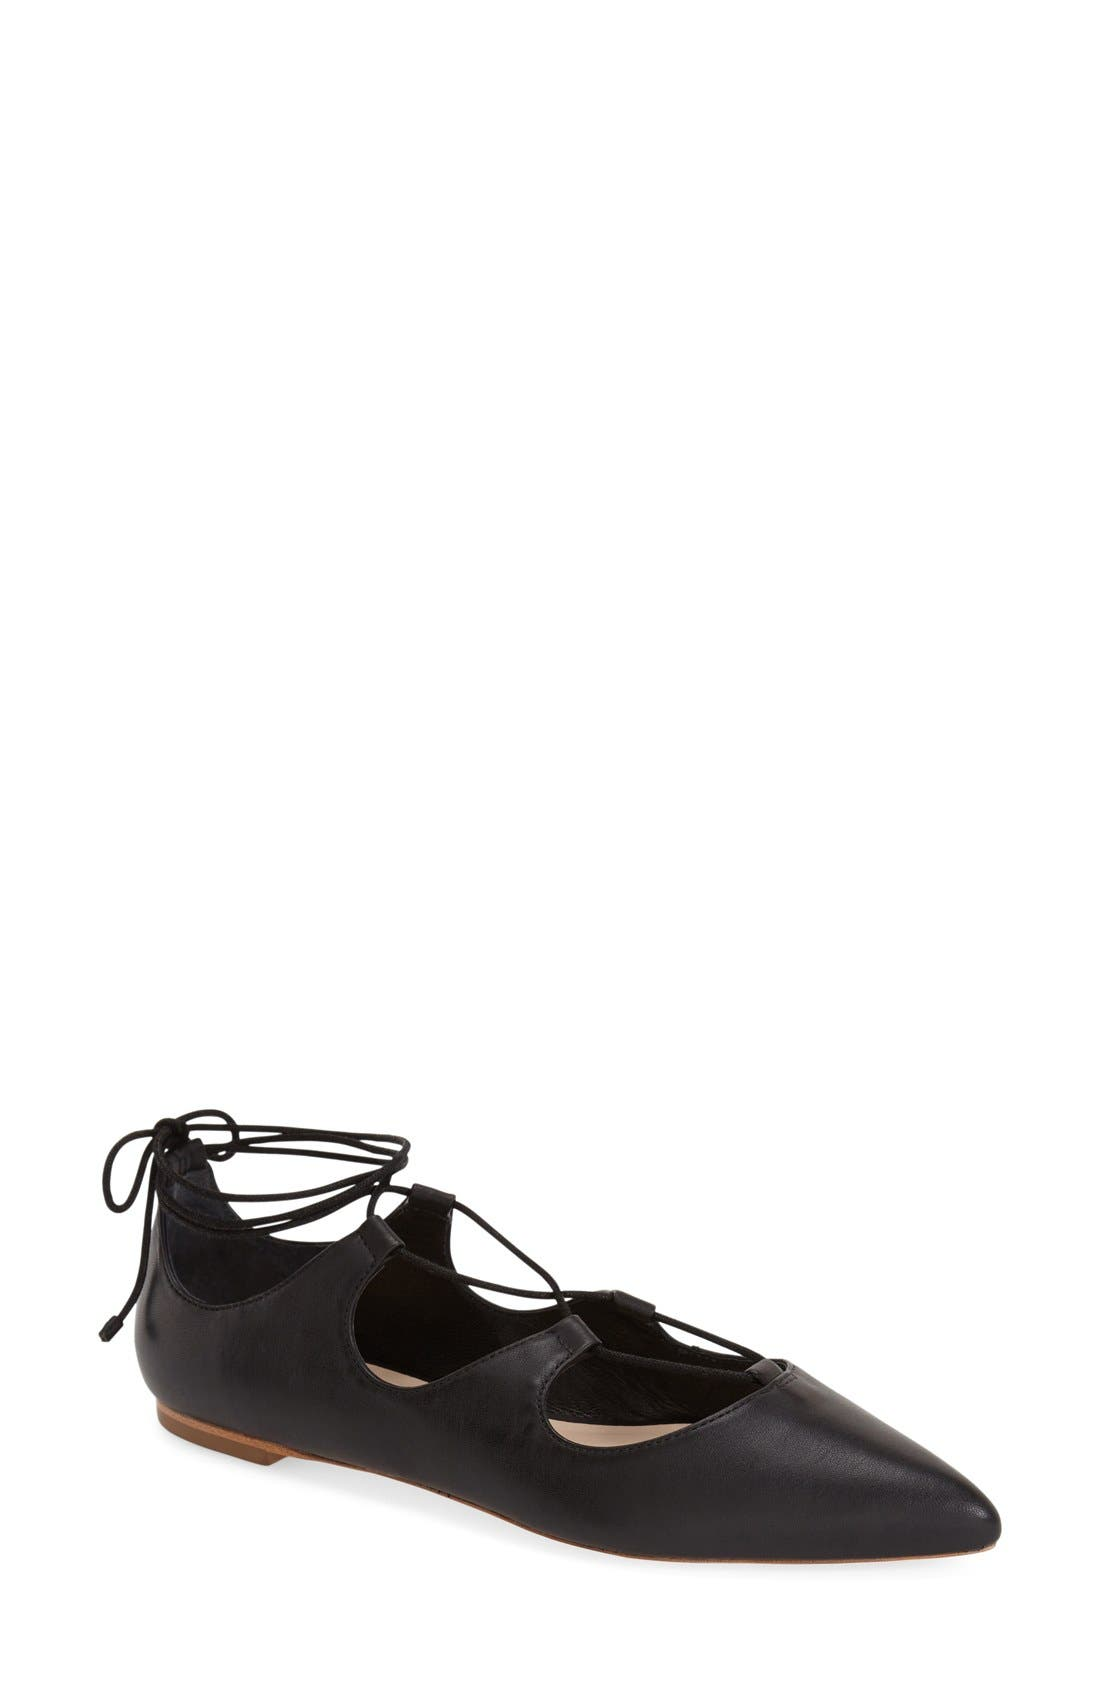 Alternate Image 1 Selected - Loeffler Randall 'Ambra' Pointy Toe Ghillie Flat (Women)